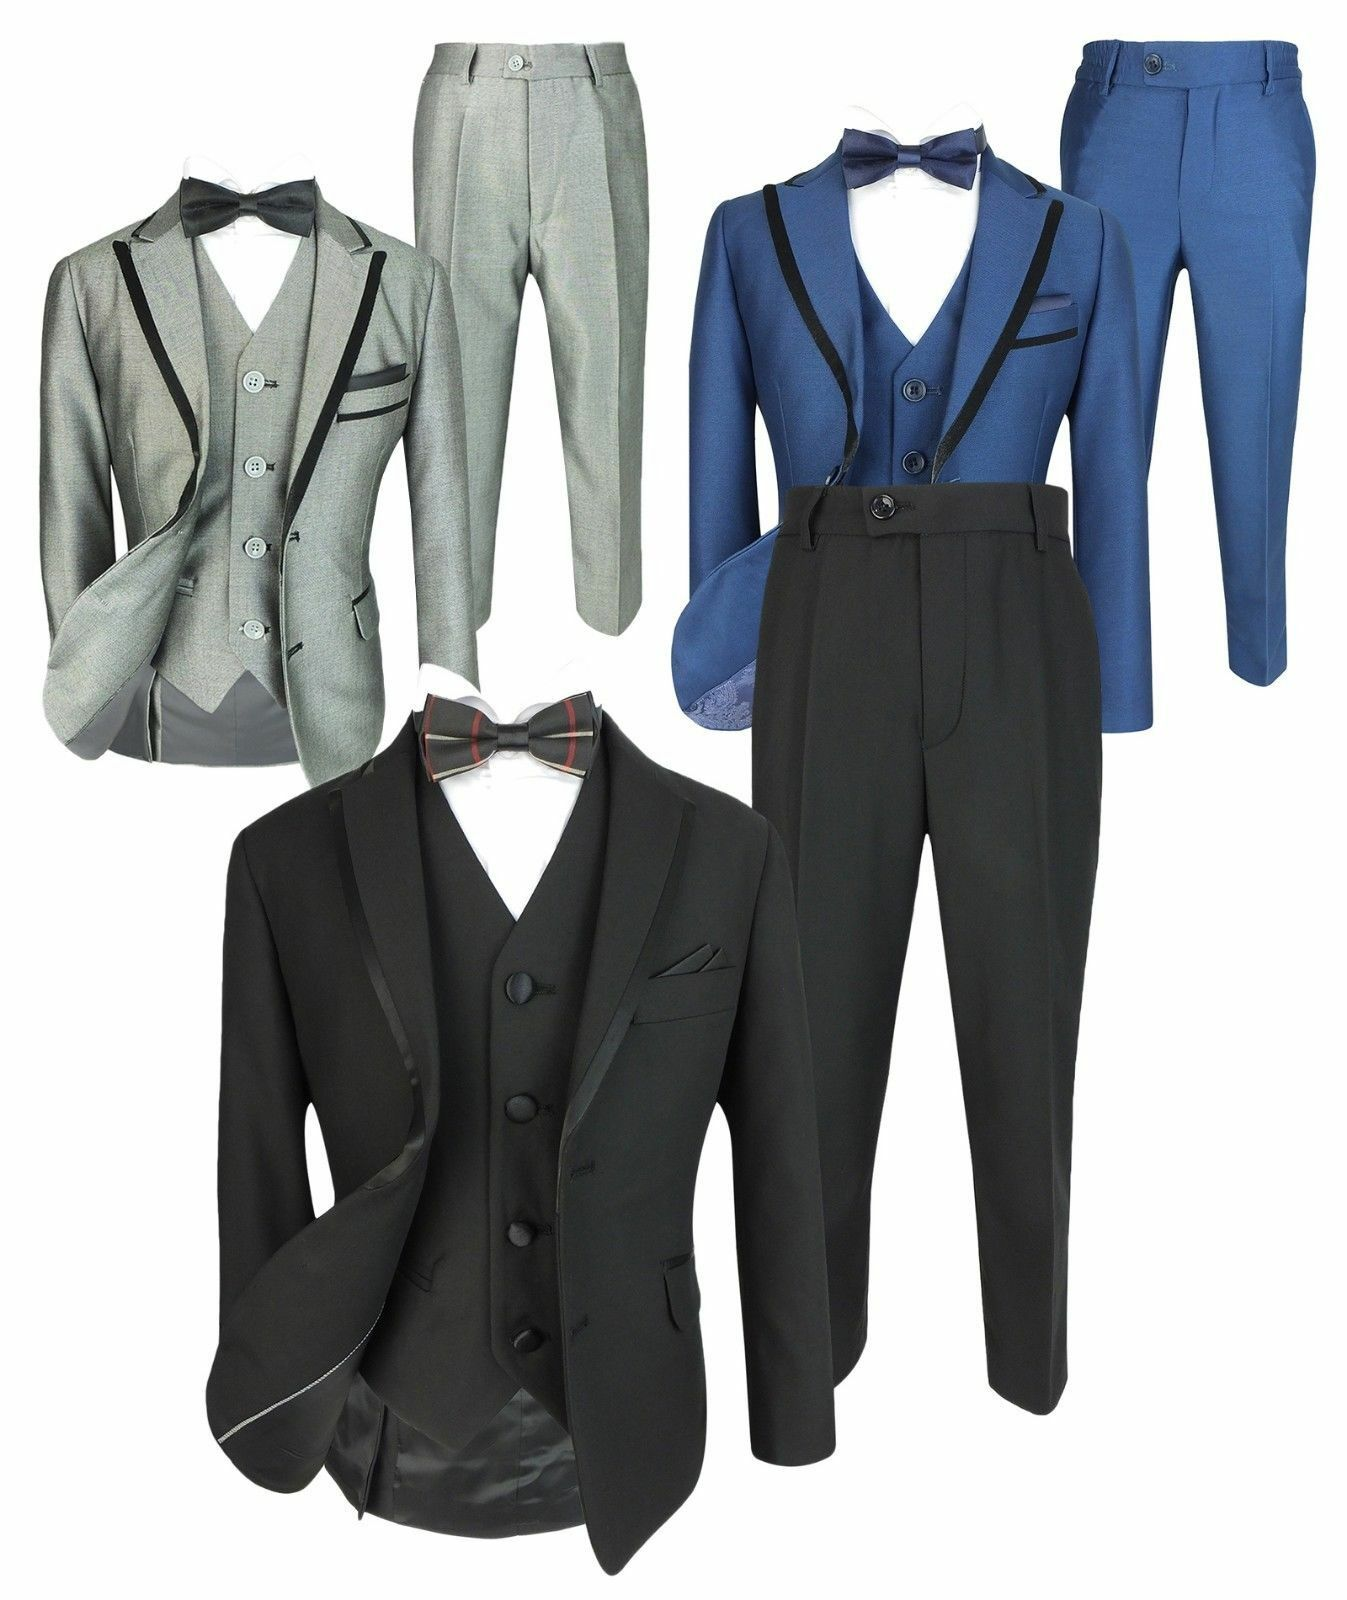 Romano Jungen Slim Fit Smoking Anzug Kinder Hochzeit Prom Party Formal Outfit